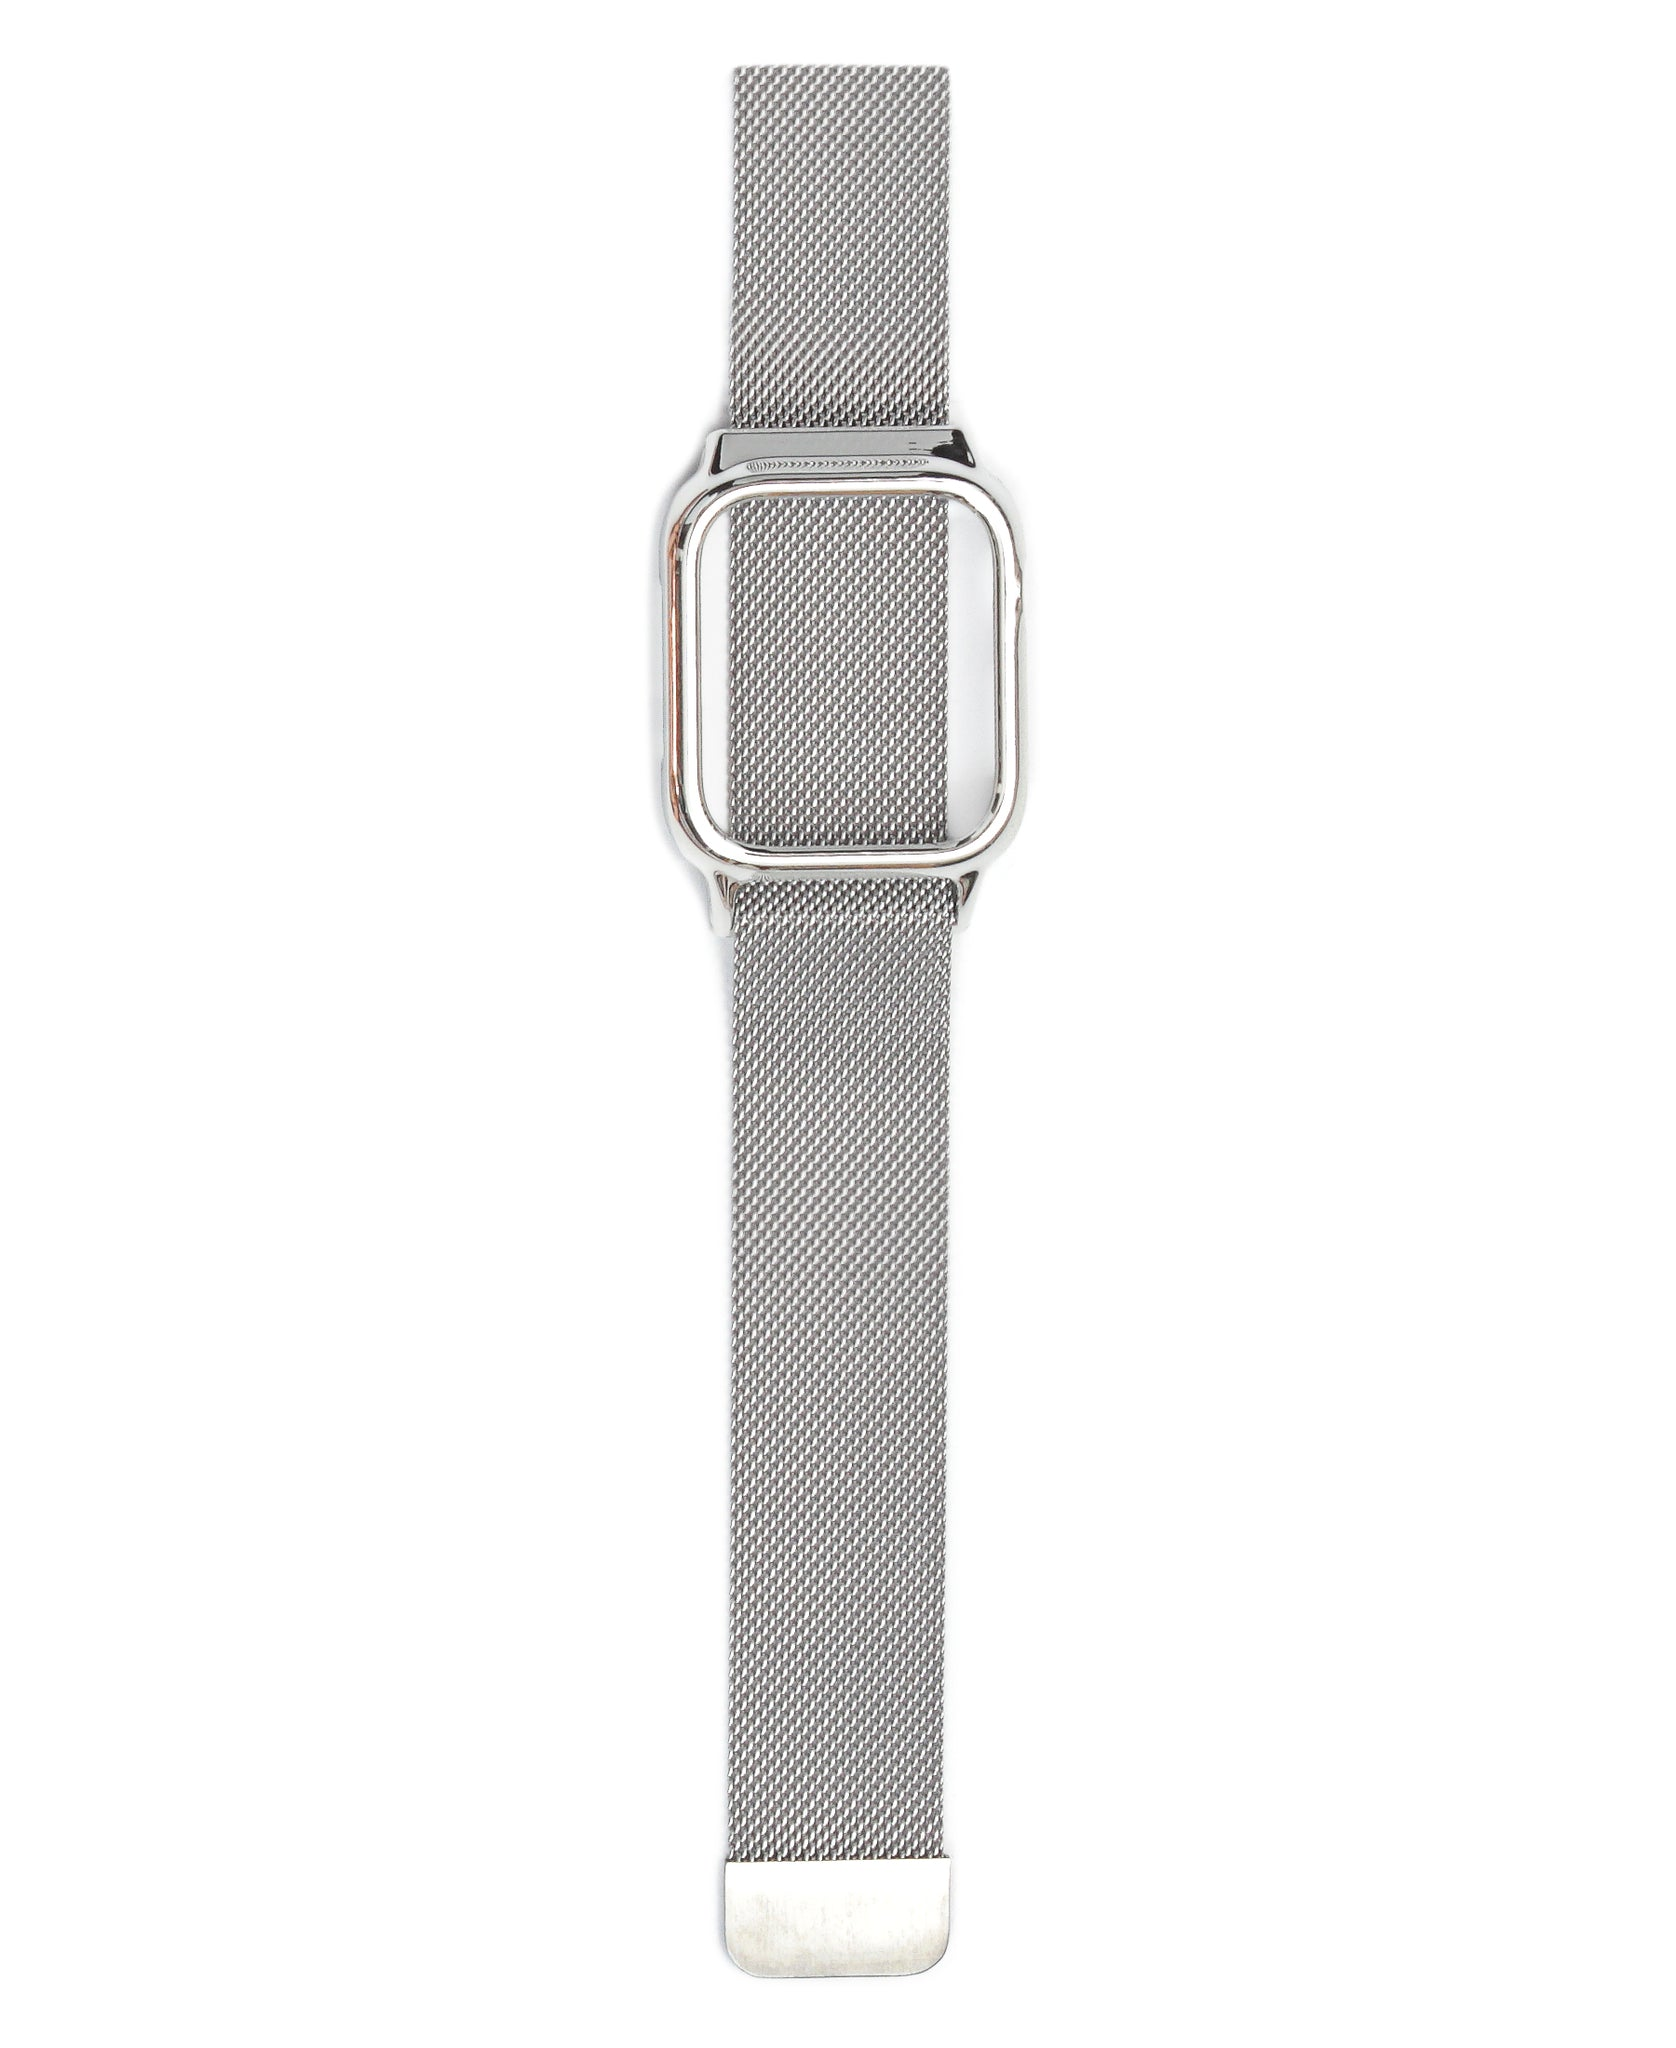 40mm Apple Watch Band With Cover - Silver